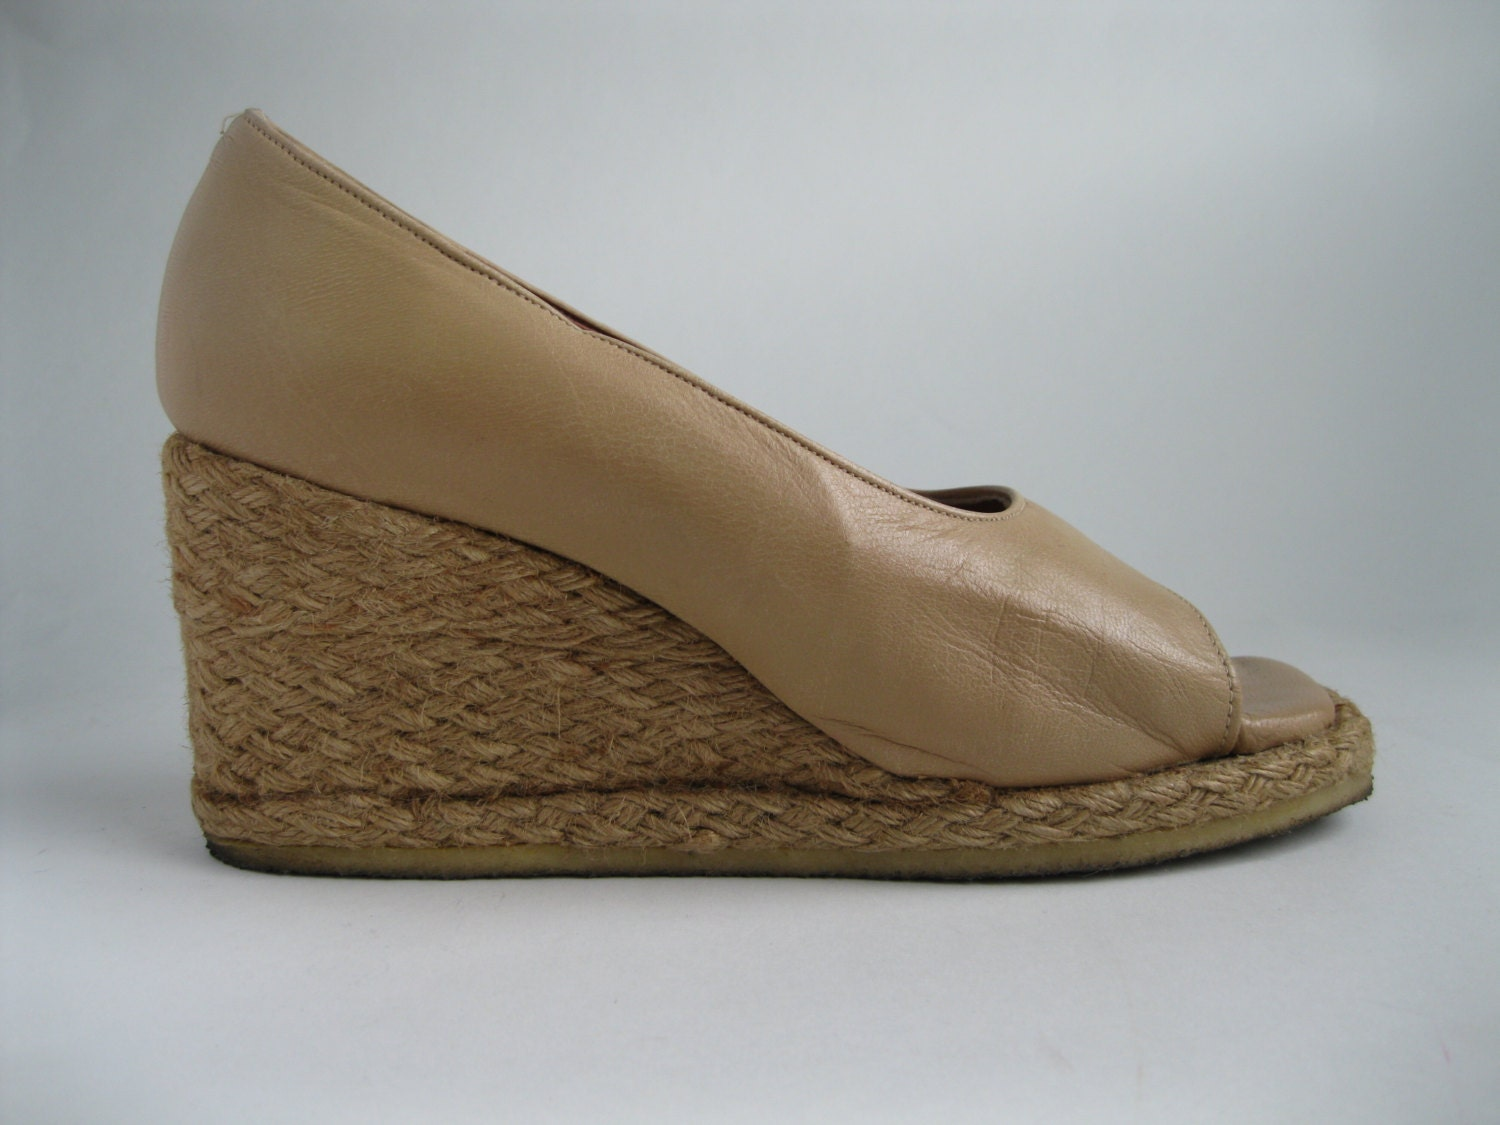 vintage 1970s neutral wedge shoes leather nautical by